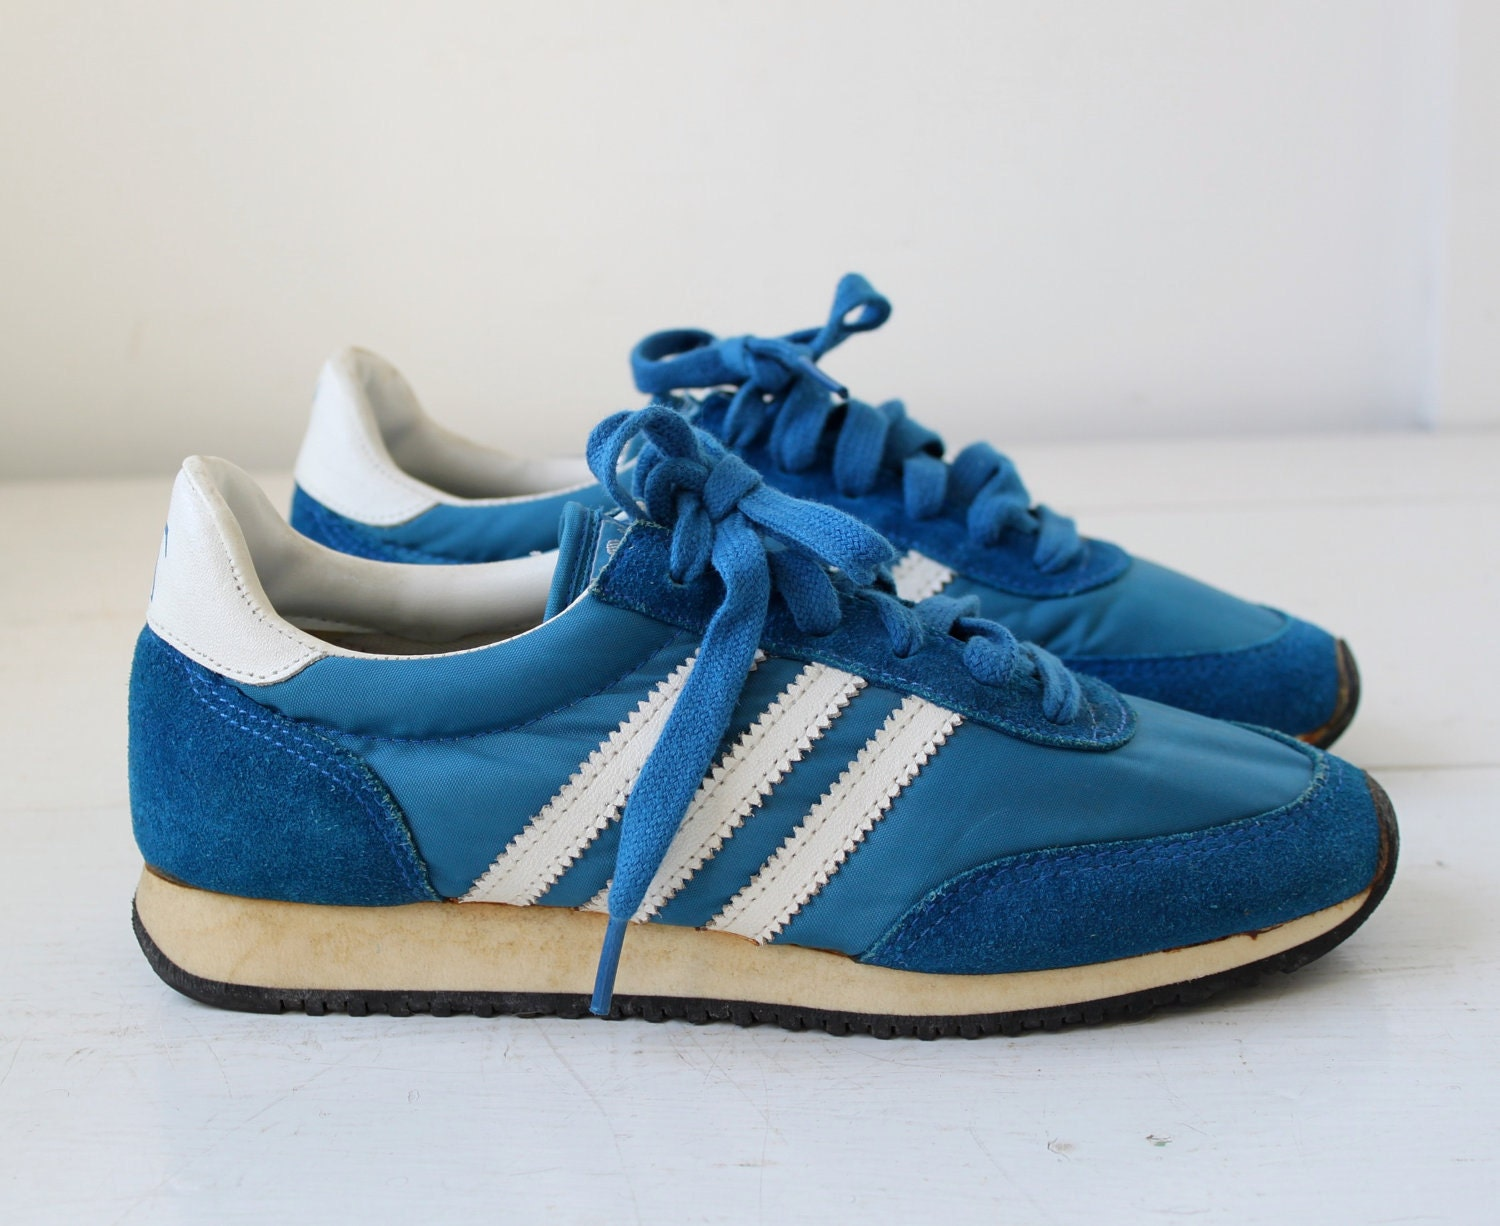 vintage 1970s blue sneakers. JC Penney 3 by Luncheonettevintage